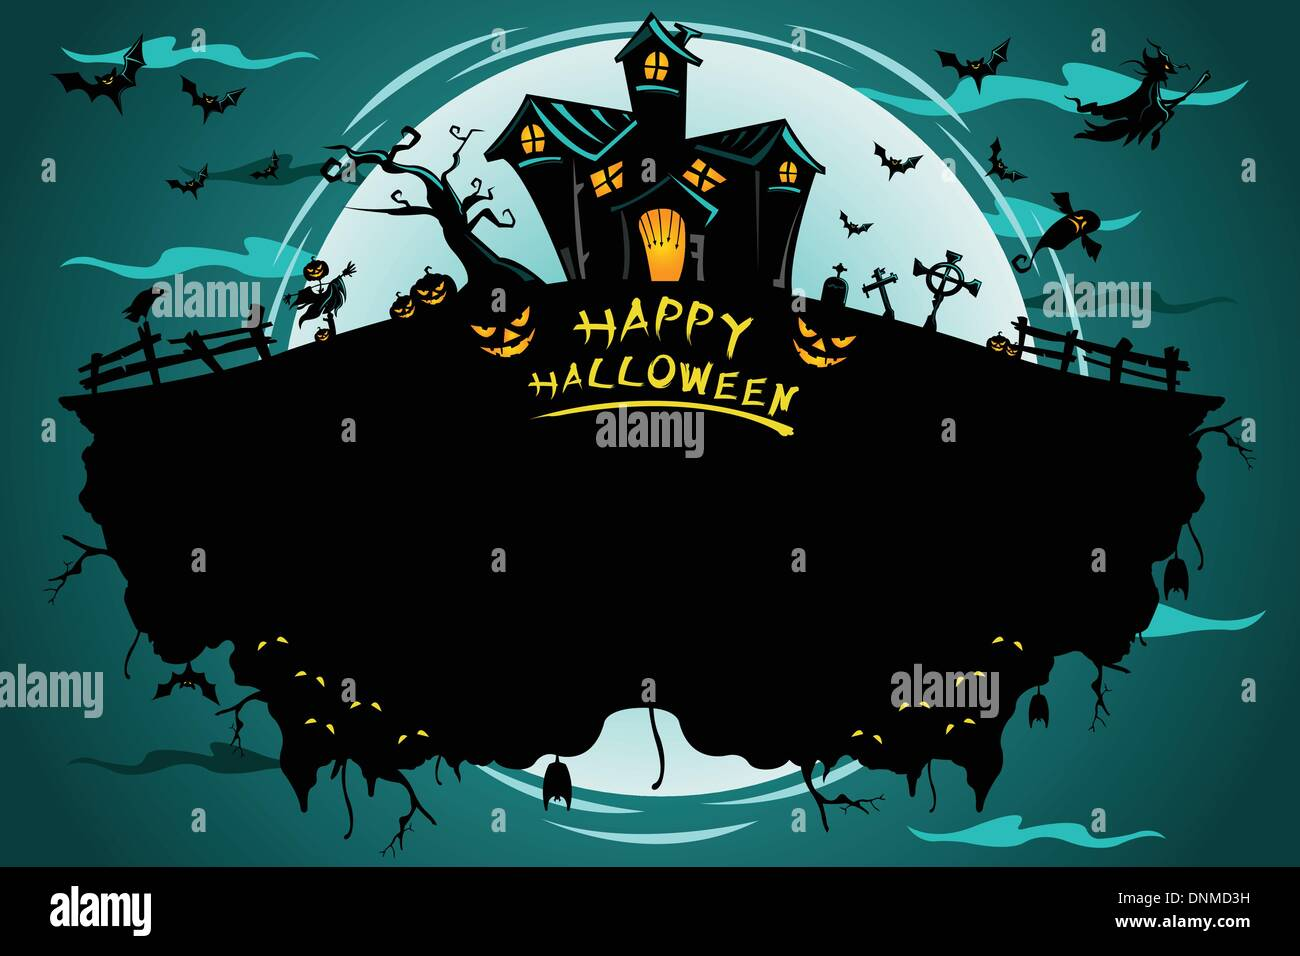 Un vecteur illustration de l'affiche de l'Halloween Photo Stock